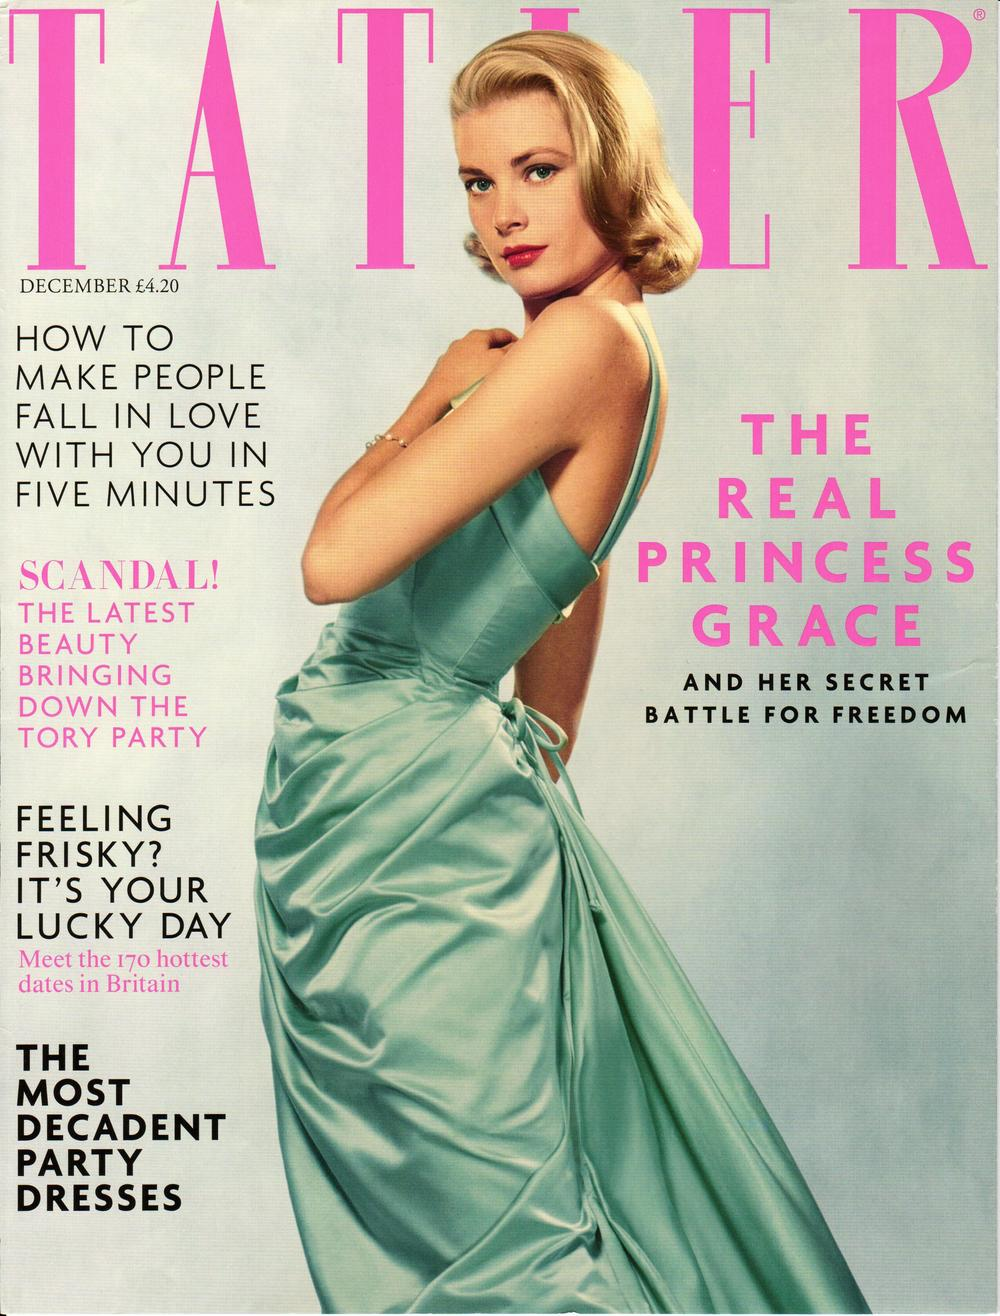 Tatler Dec 2013 cover.jpg